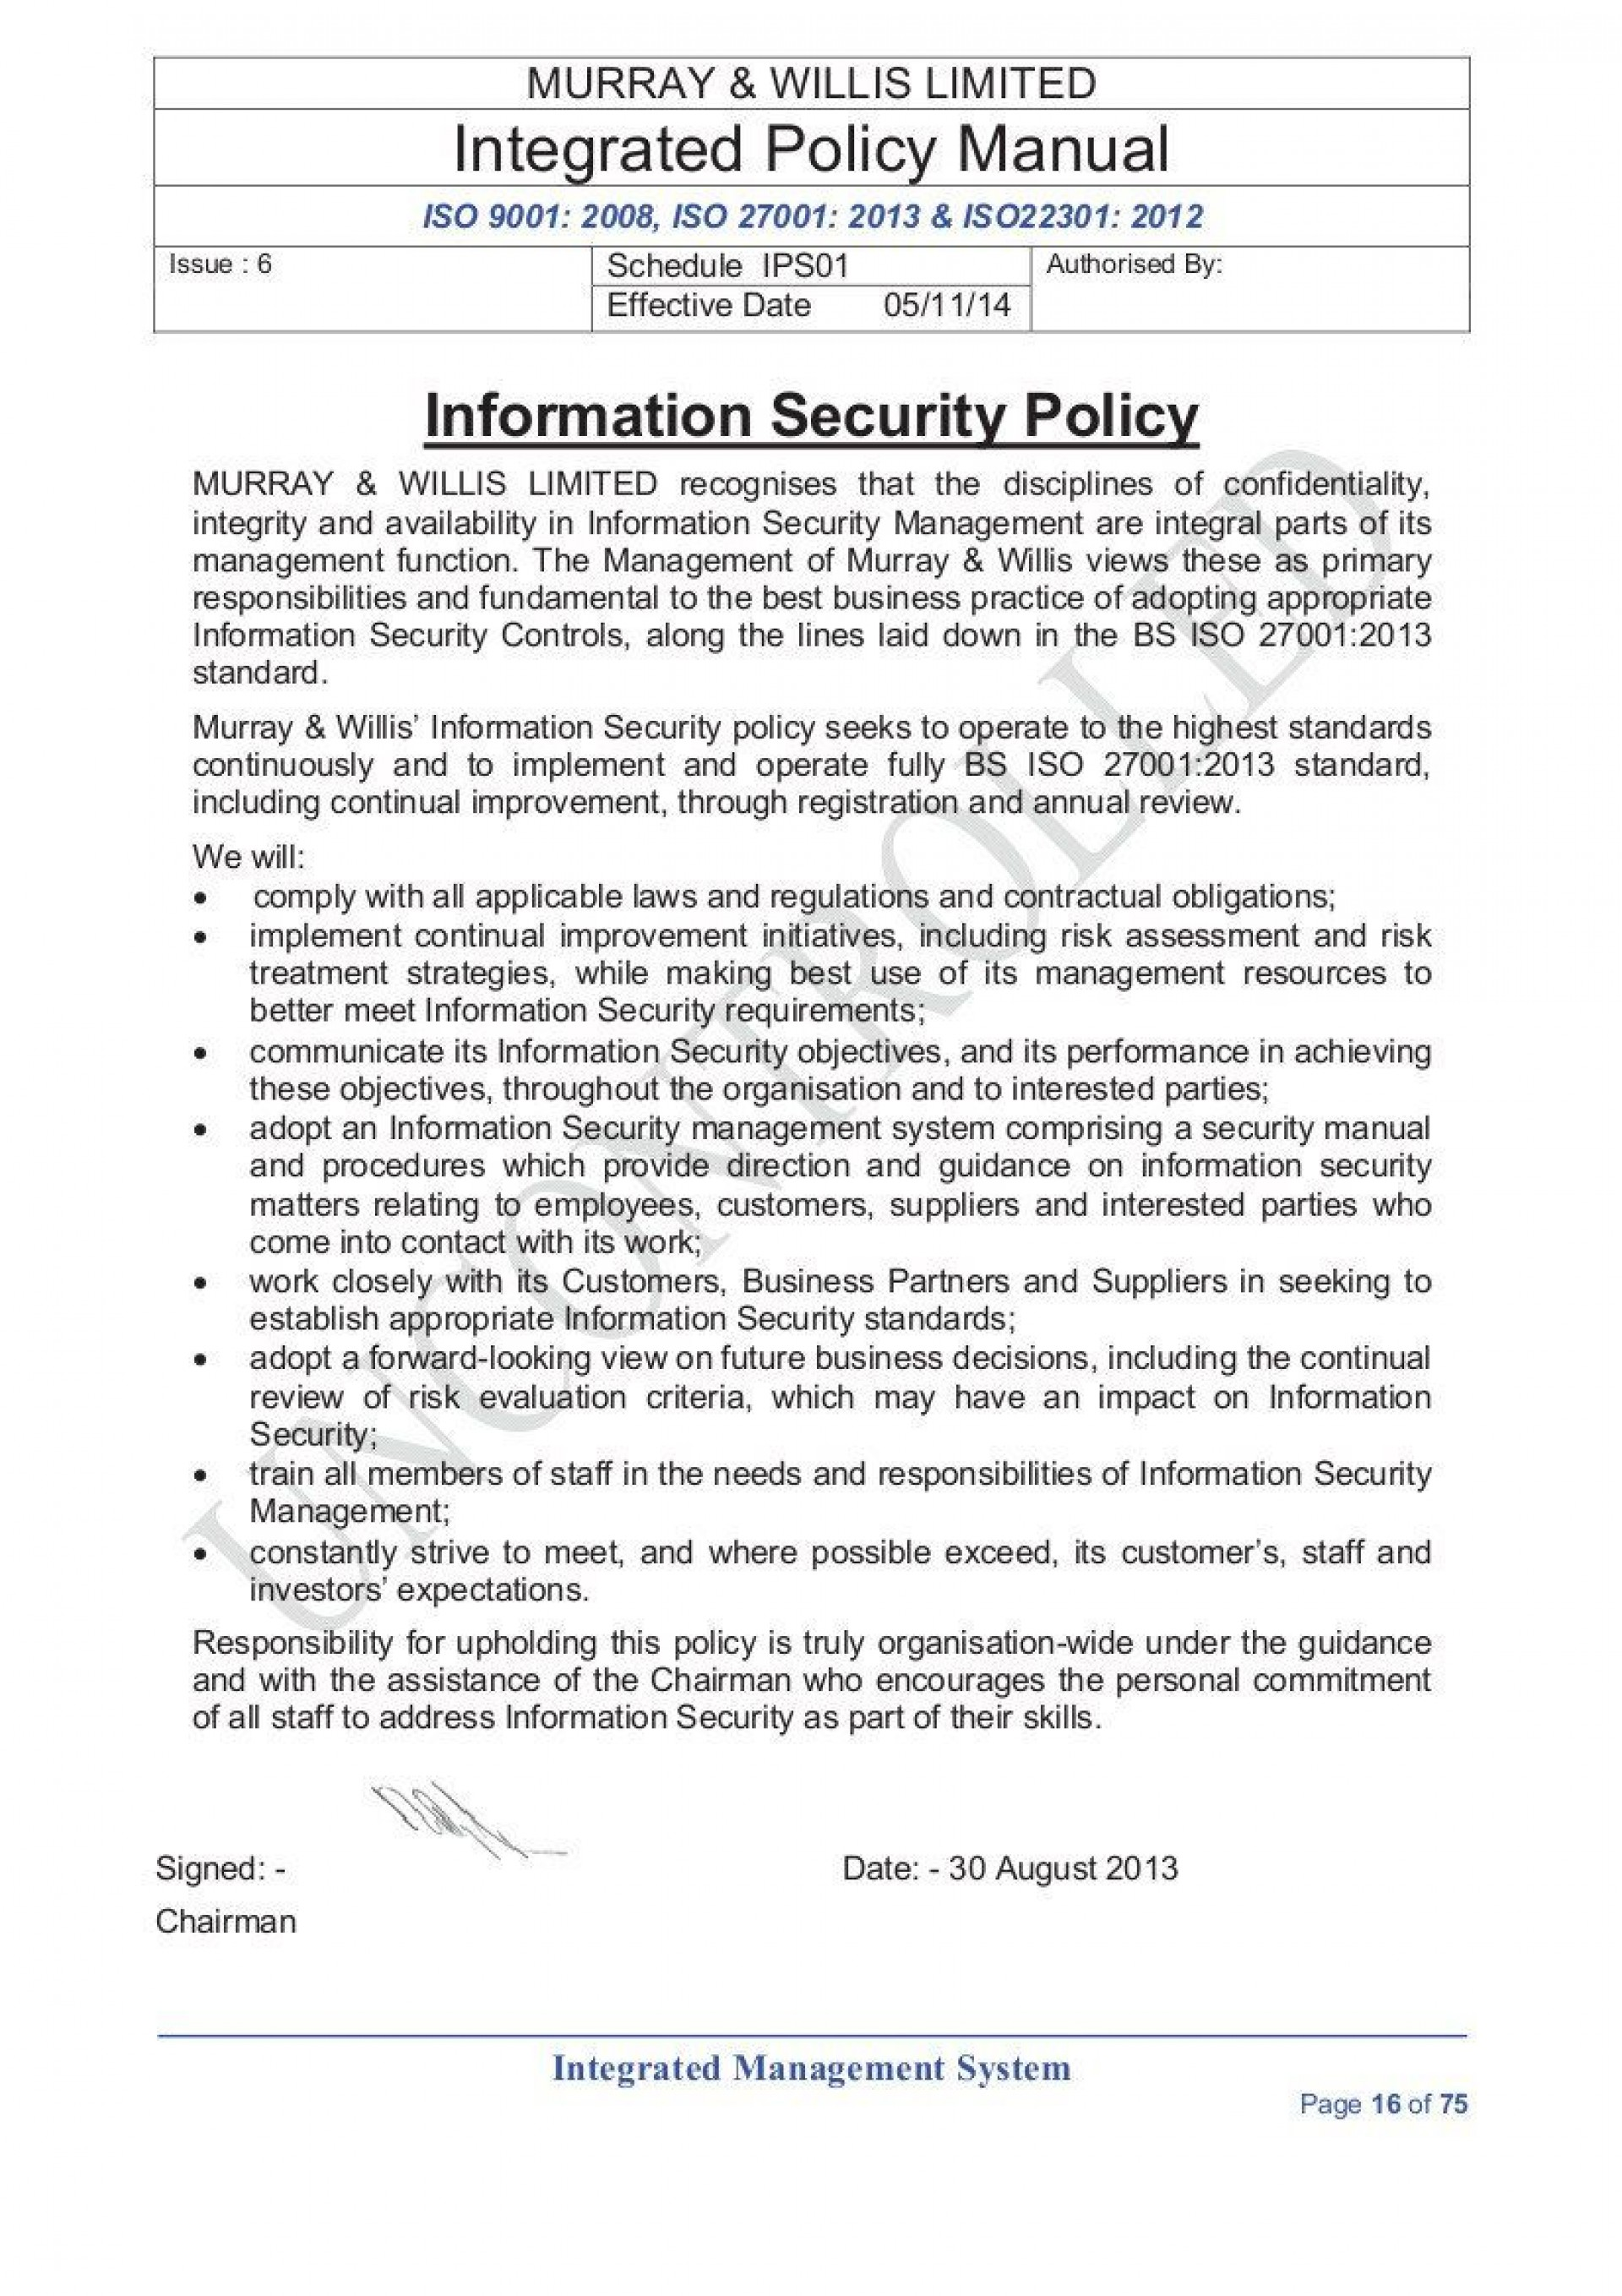 003 Singular Information Security Policy Template High Resolution  It Sample Pdf Uk Gdpr For Small Busines Australia1920